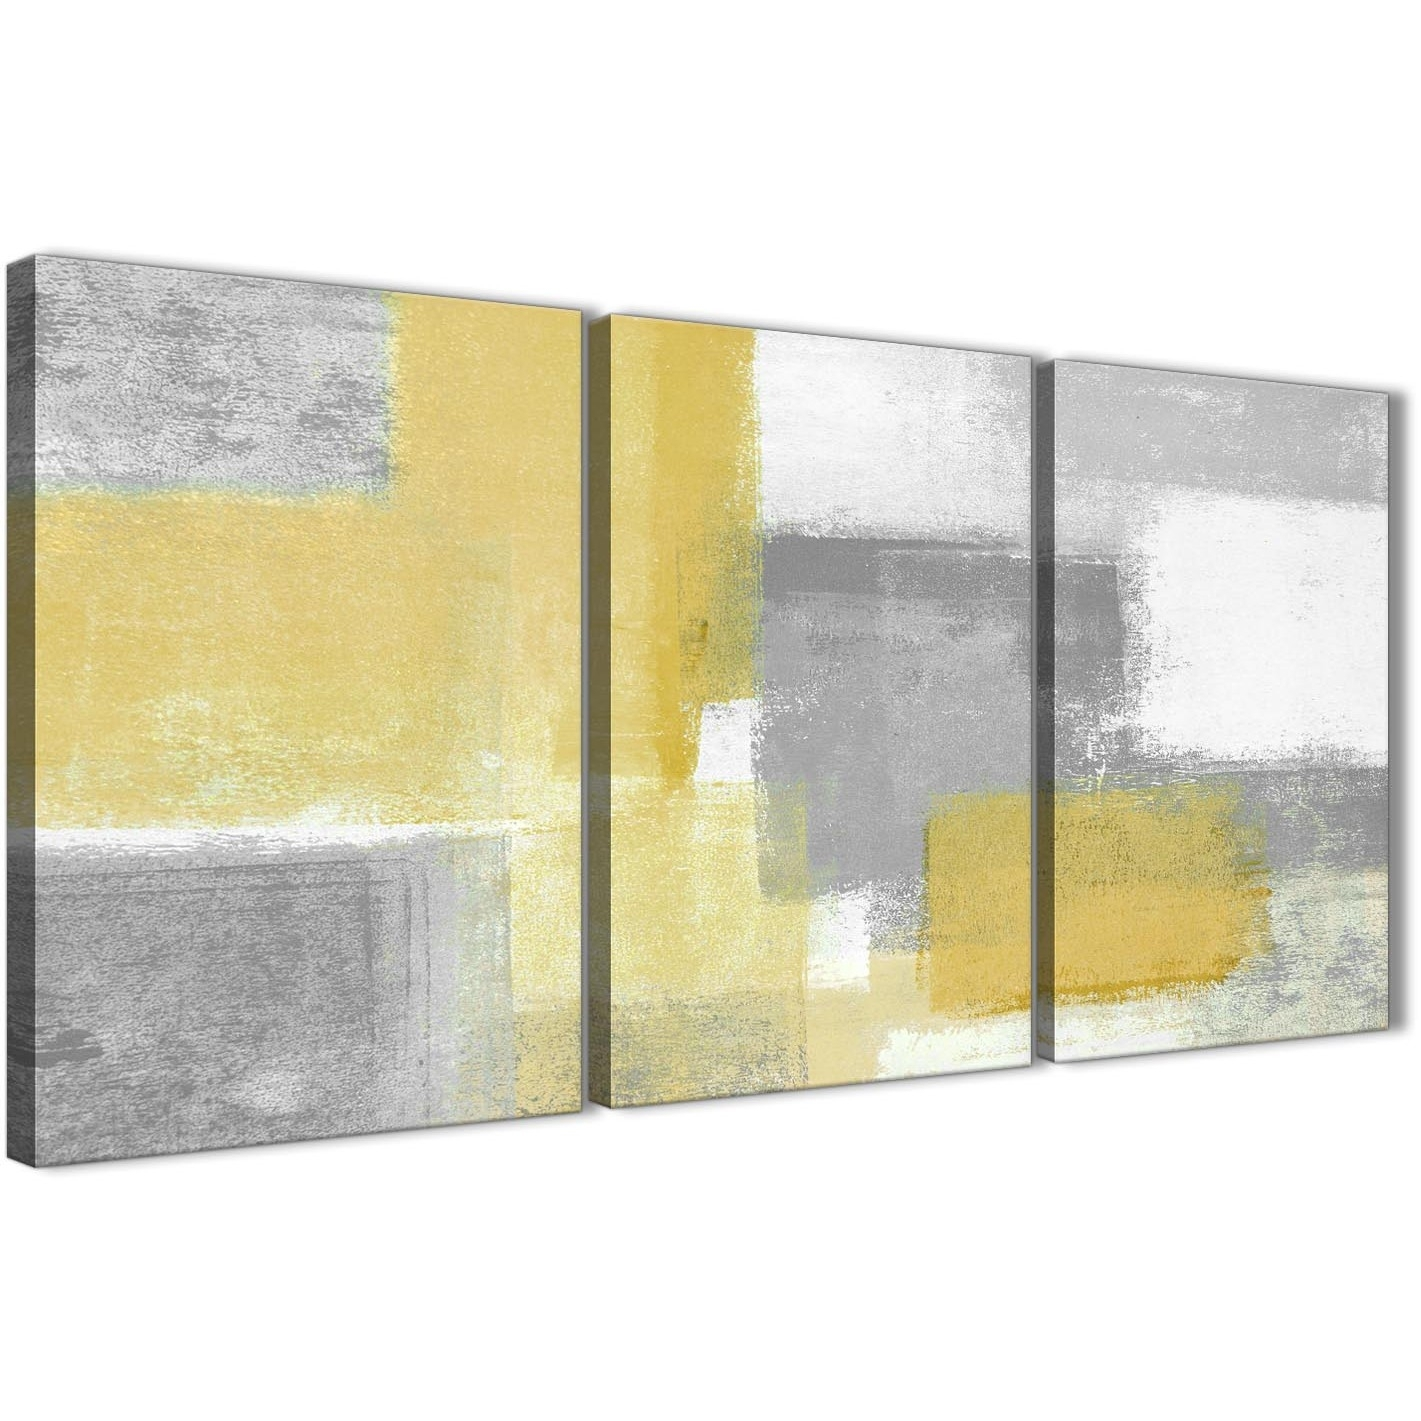 3 Panel Mustard Yellow Grey Kitchen Canvas Wall Art Decor – Abstract Throughout Latest Canvas Wall Art (View 3 of 15)